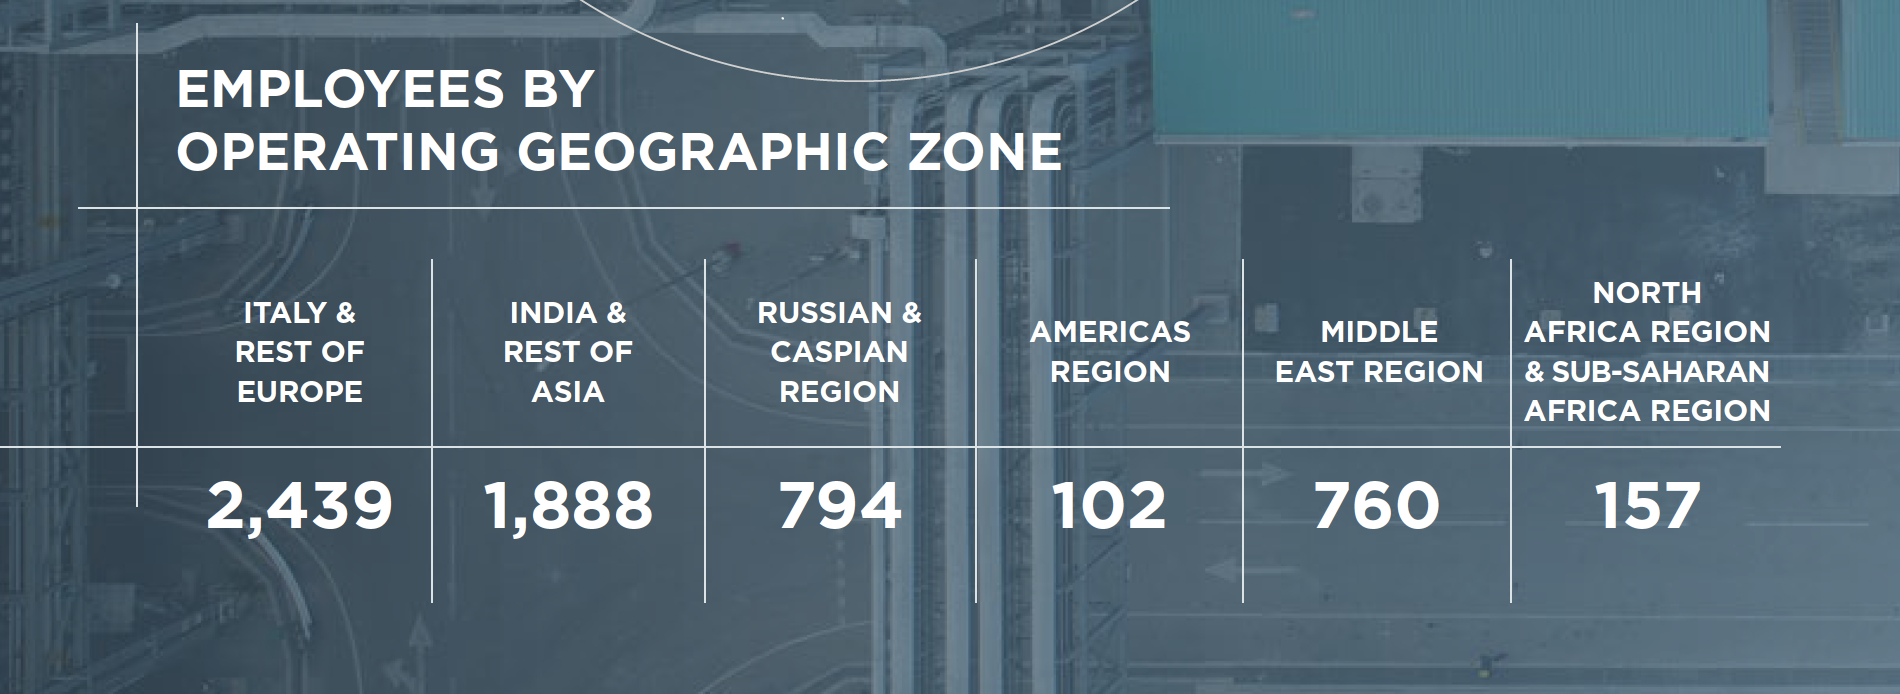 EMPLOYEES BY OPERATING GEOGRAPHIC ZONE